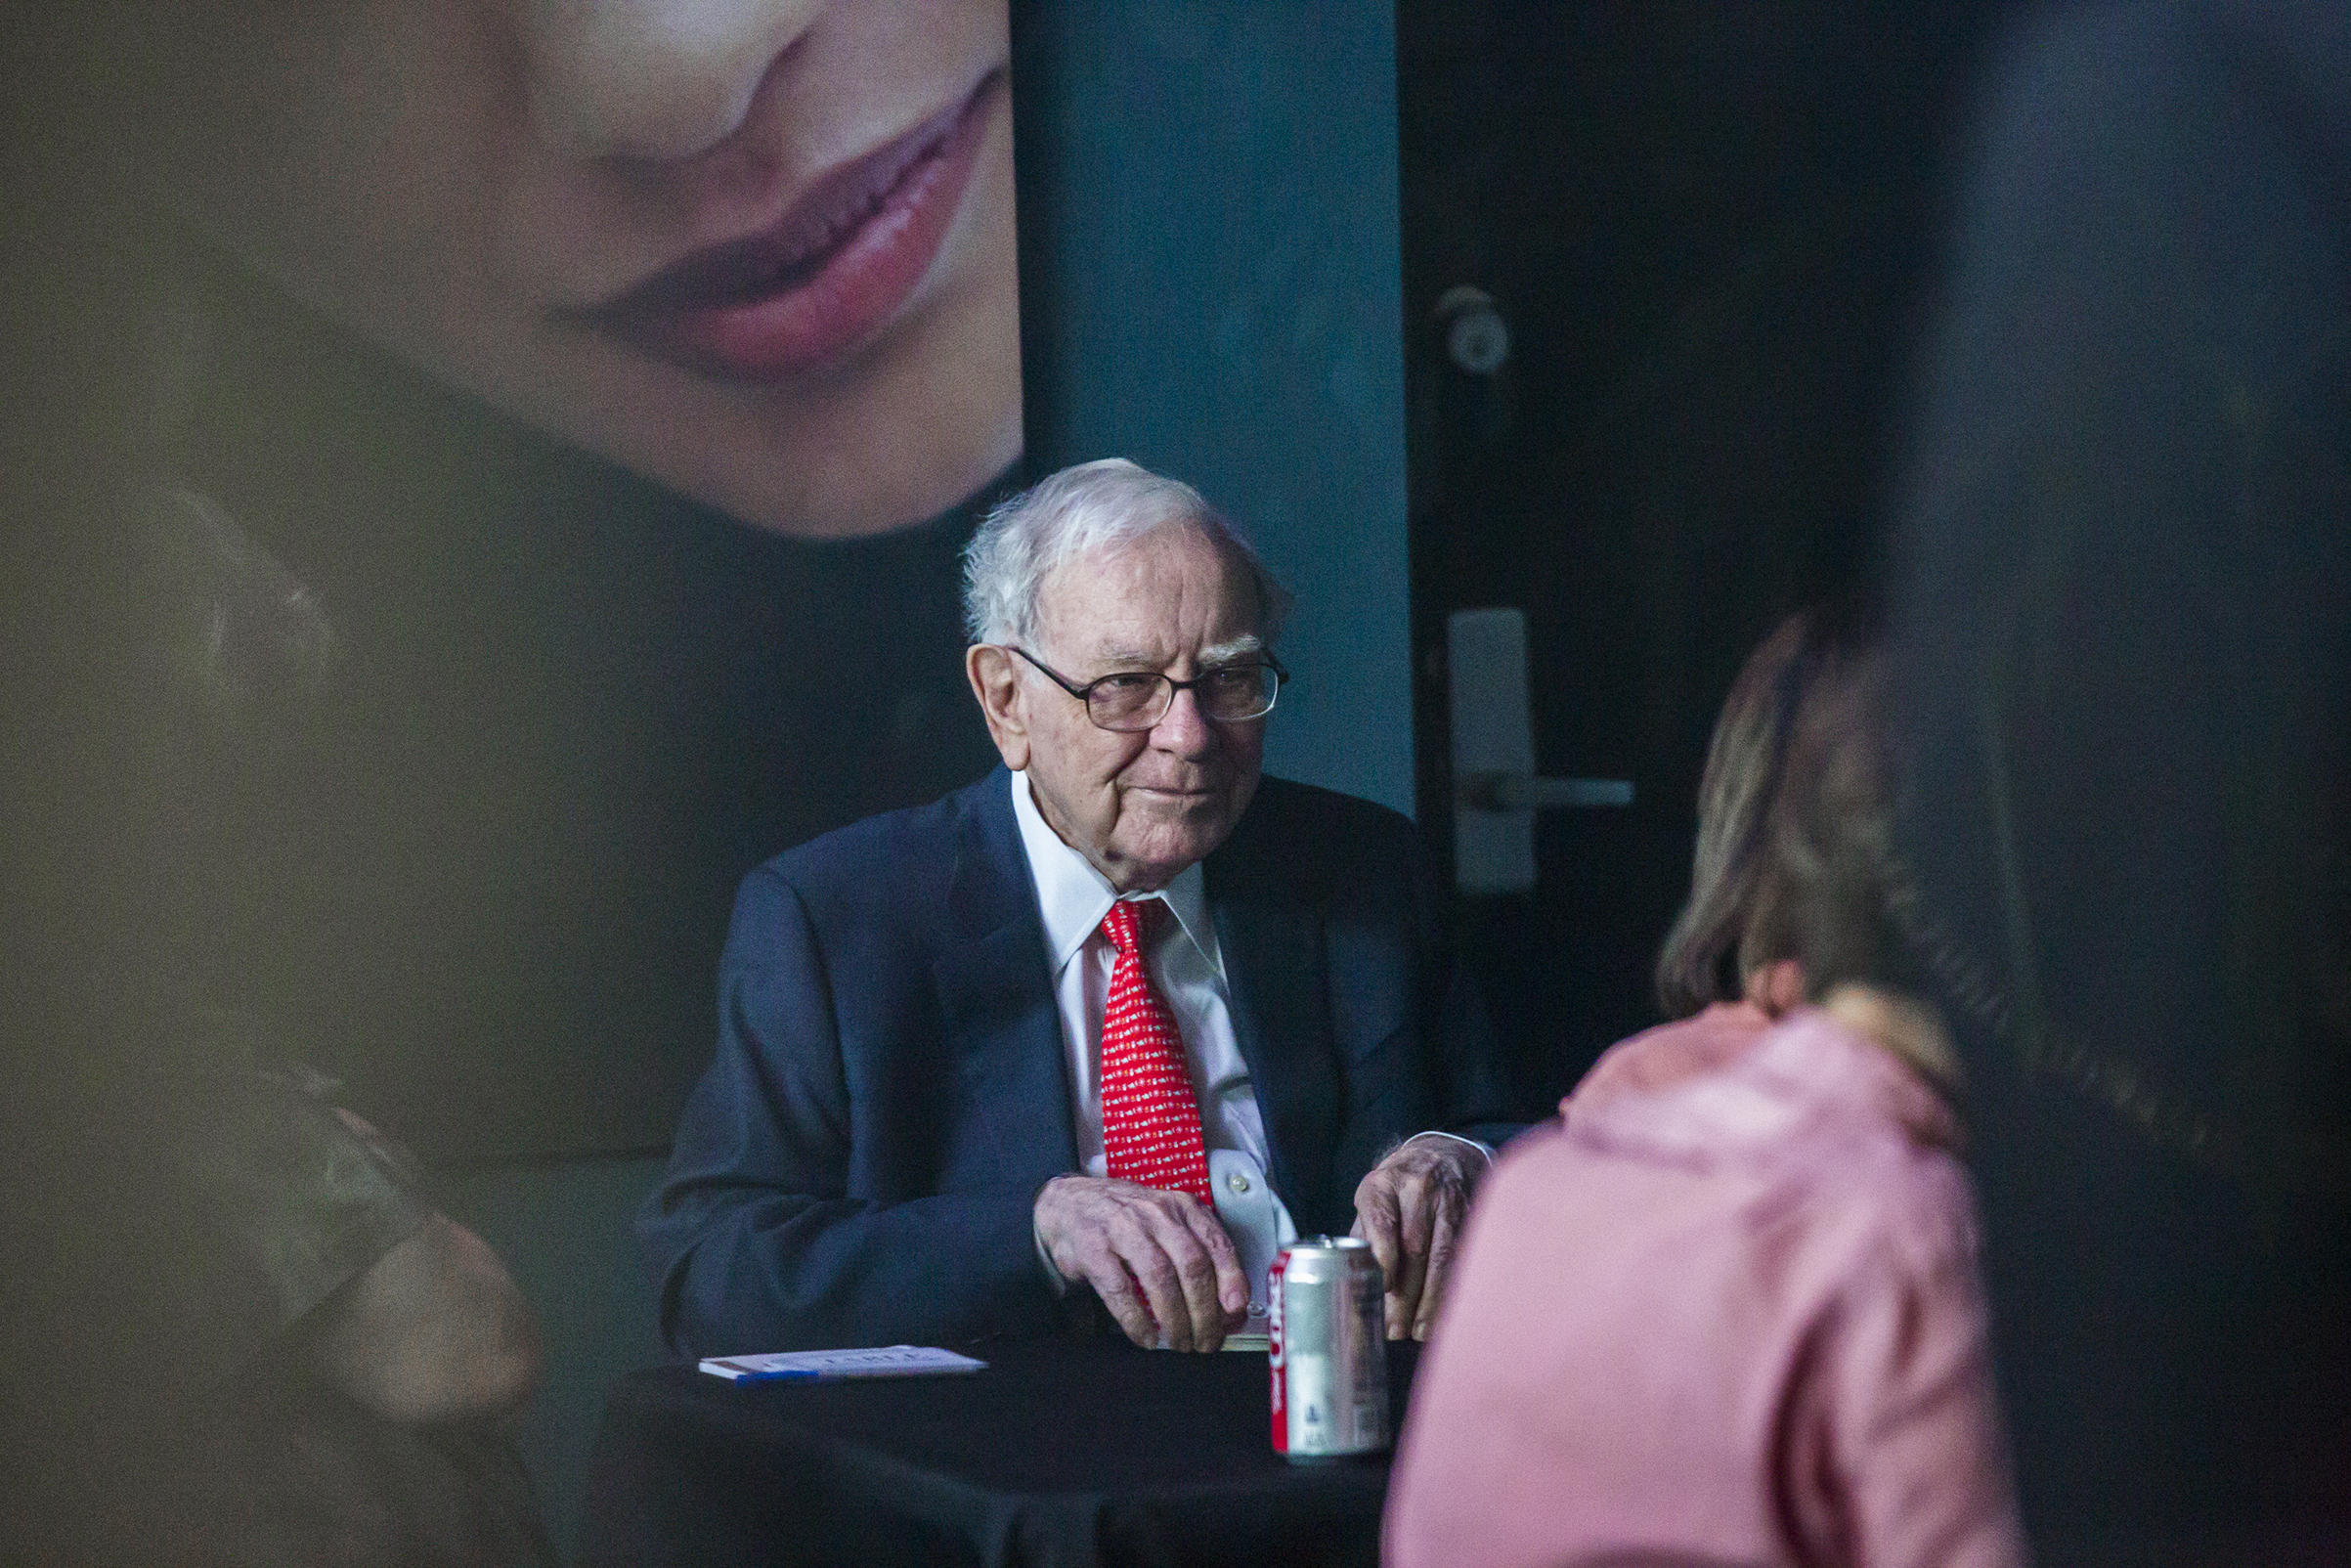 Warren Buffet, chairman and chief executive officer of Berkshire Hathaway Inc., at the Berkshire Hathaway annual shareholders meeting in Omaha, Nebraska, U.S., on Sunday, May 6, 2018. Buffett said he doesn't want Berkshire Hathaway Inc. being a leader on cyber insurance because neither he nor others in the industry really know the risk.